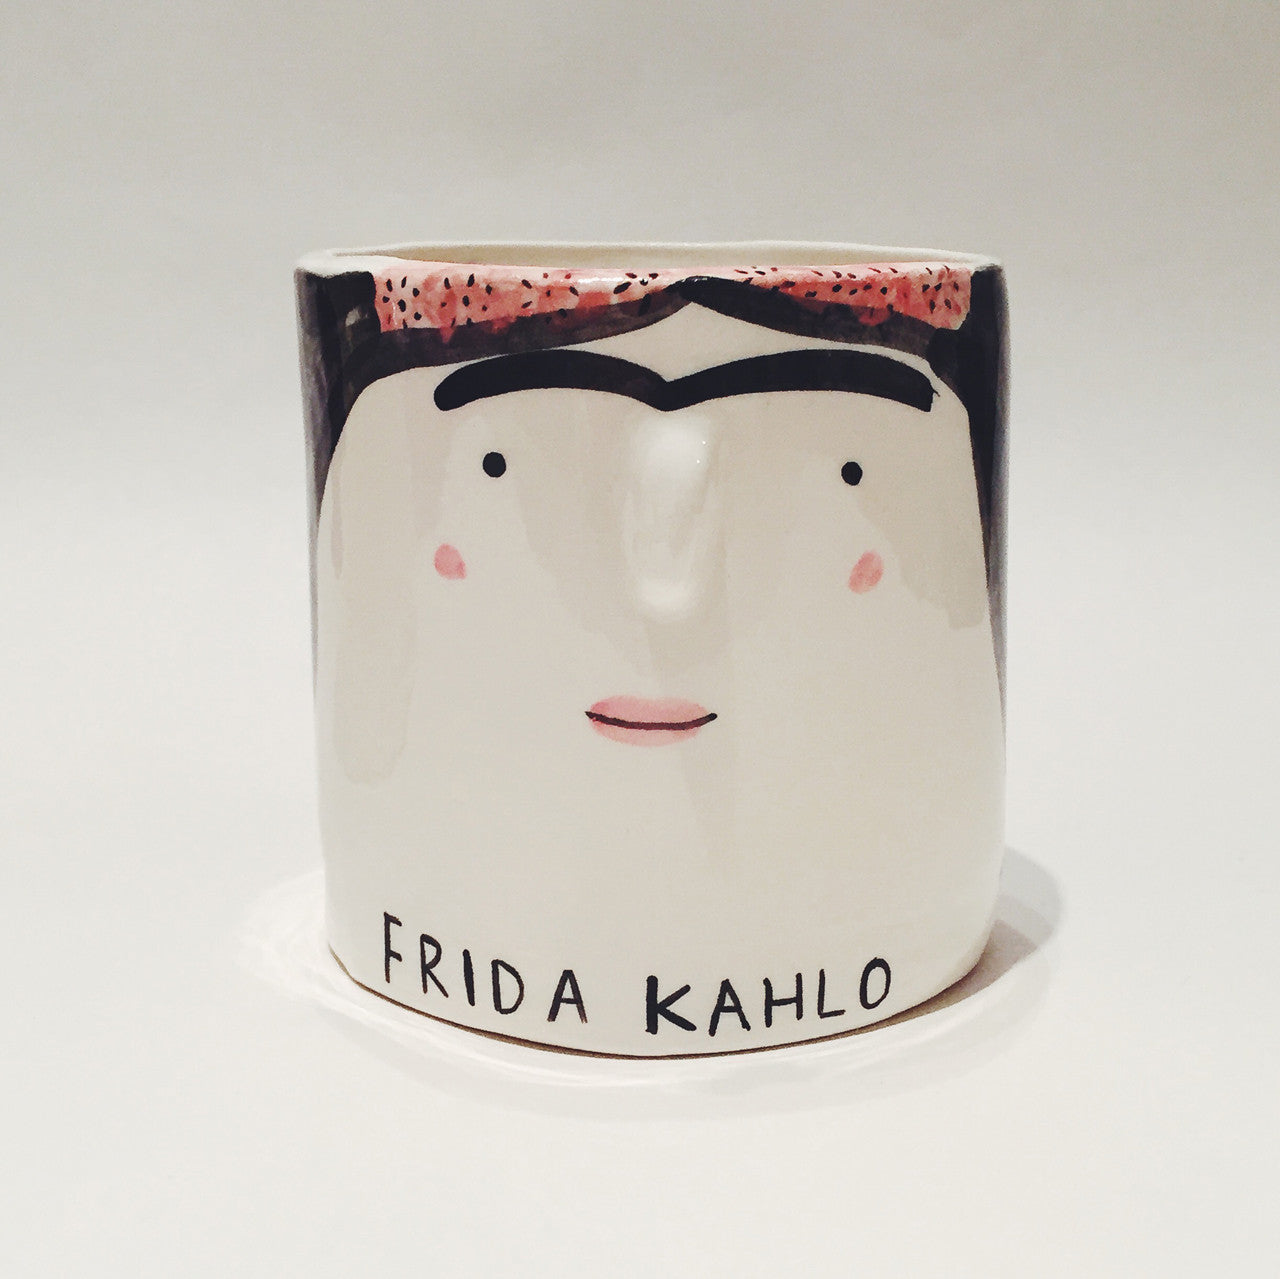 Frida Kahlo pot by Alex Sickling